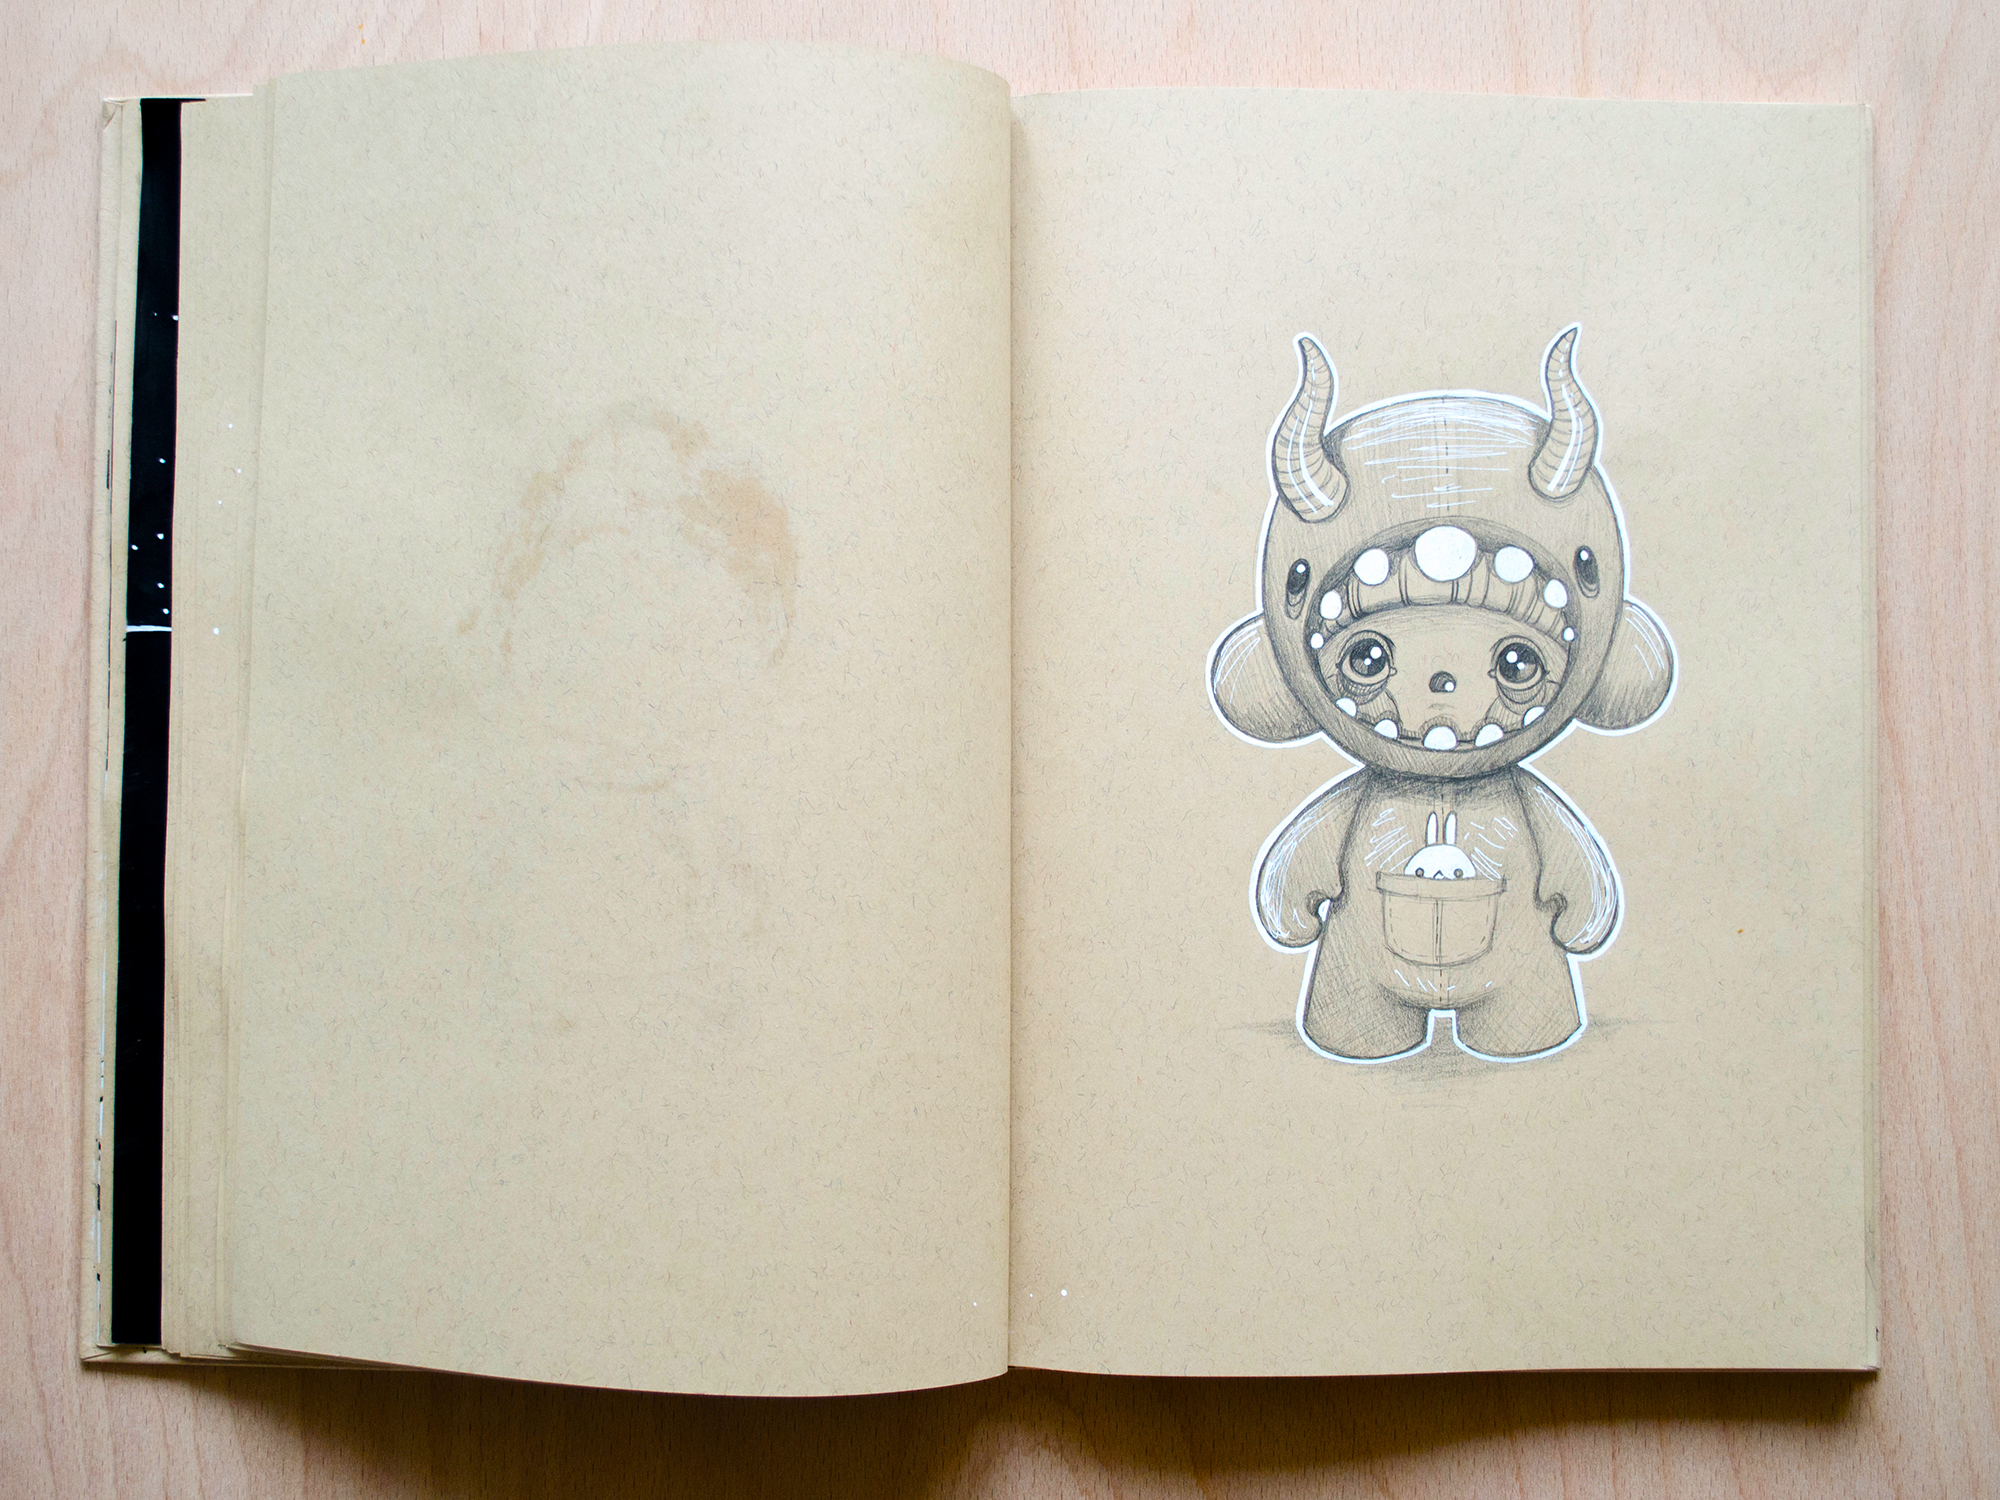 TOMODACHIISLAND_SKETCHBOOK.jpg